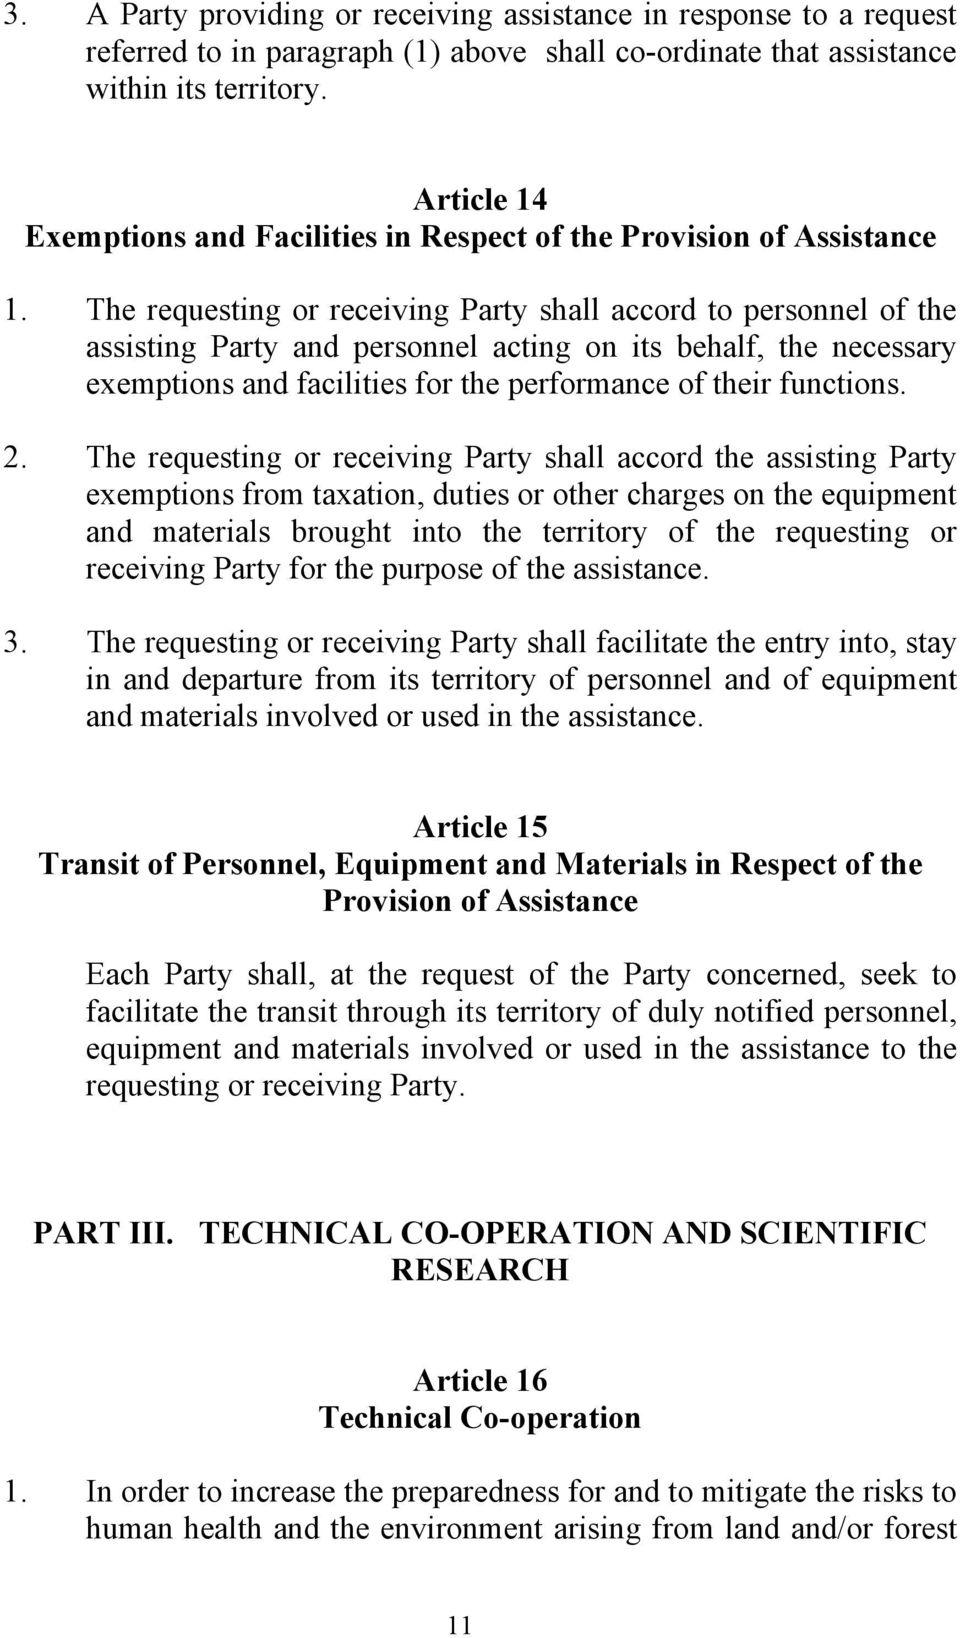 The requesting or receiving Party shall accord to personnel of the assisting Party and personnel acting on its behalf, the necessary exemptions and facilities for the performance of their functions.